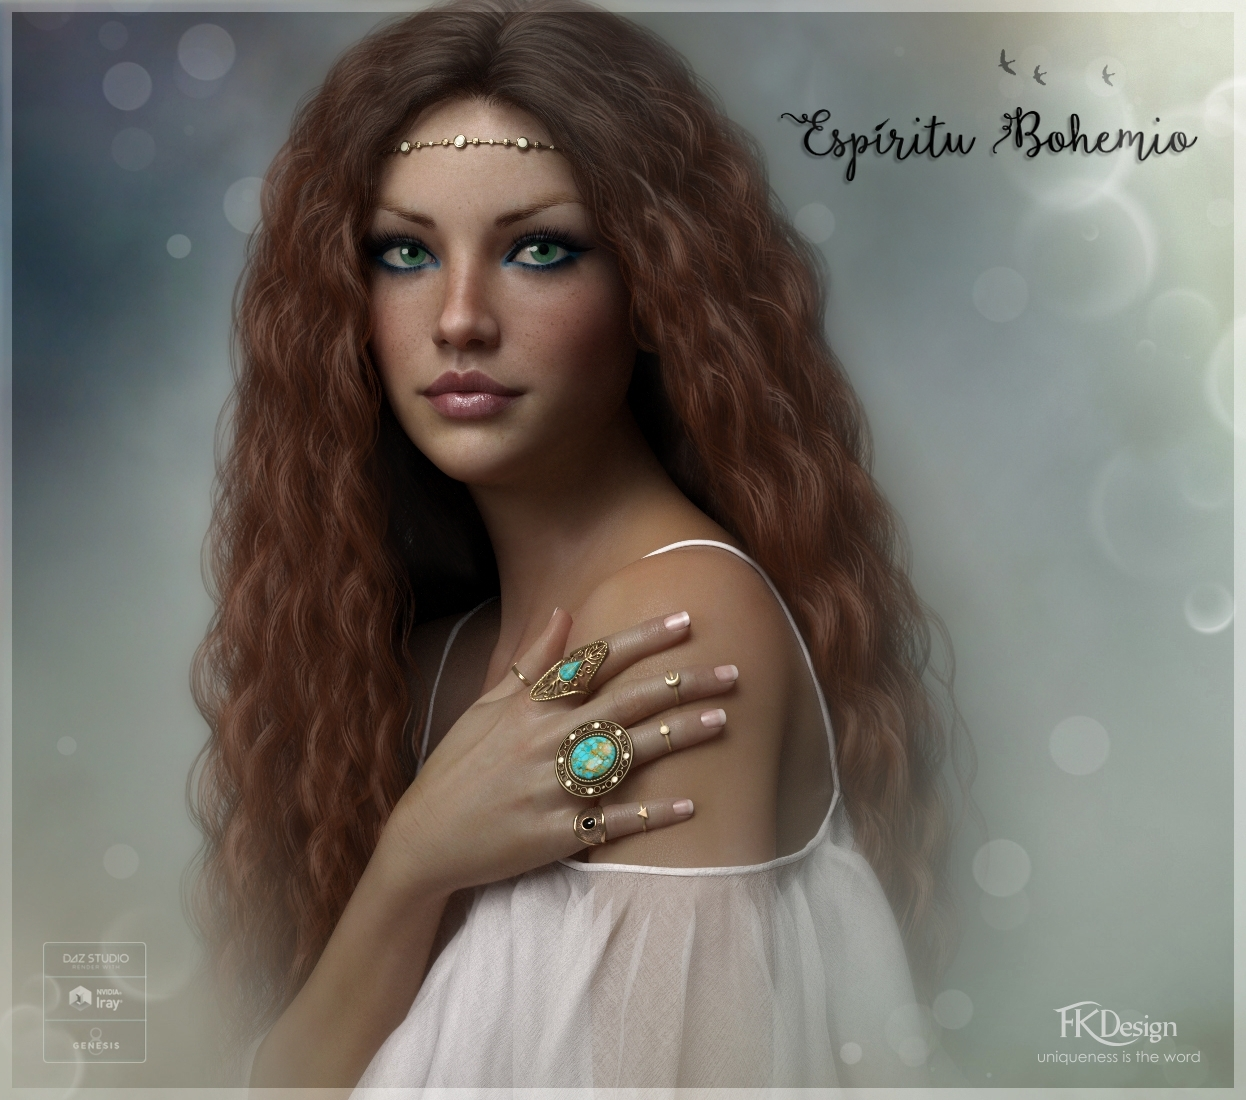 Espiritu Bohemio Rings for Genesis 8 Females